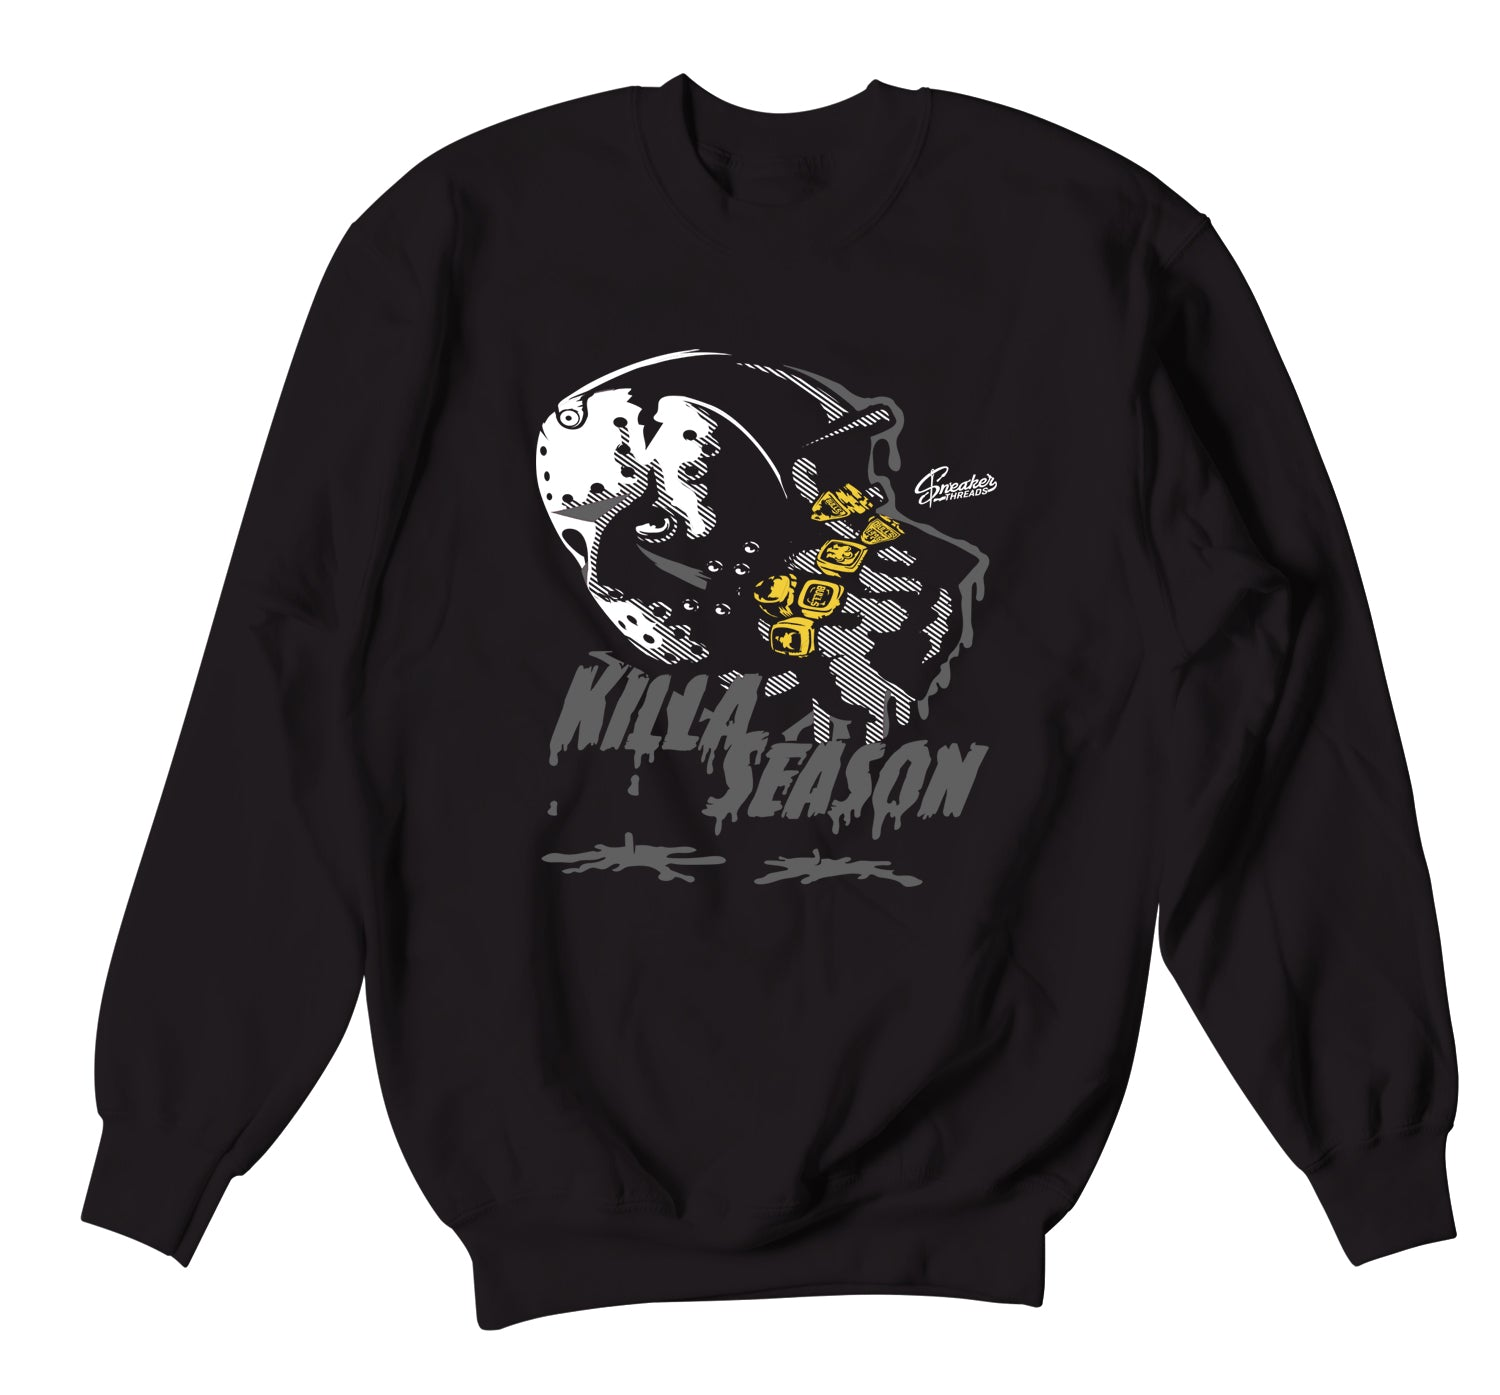 Jordan 4 Black Cat Killa Season Sweater